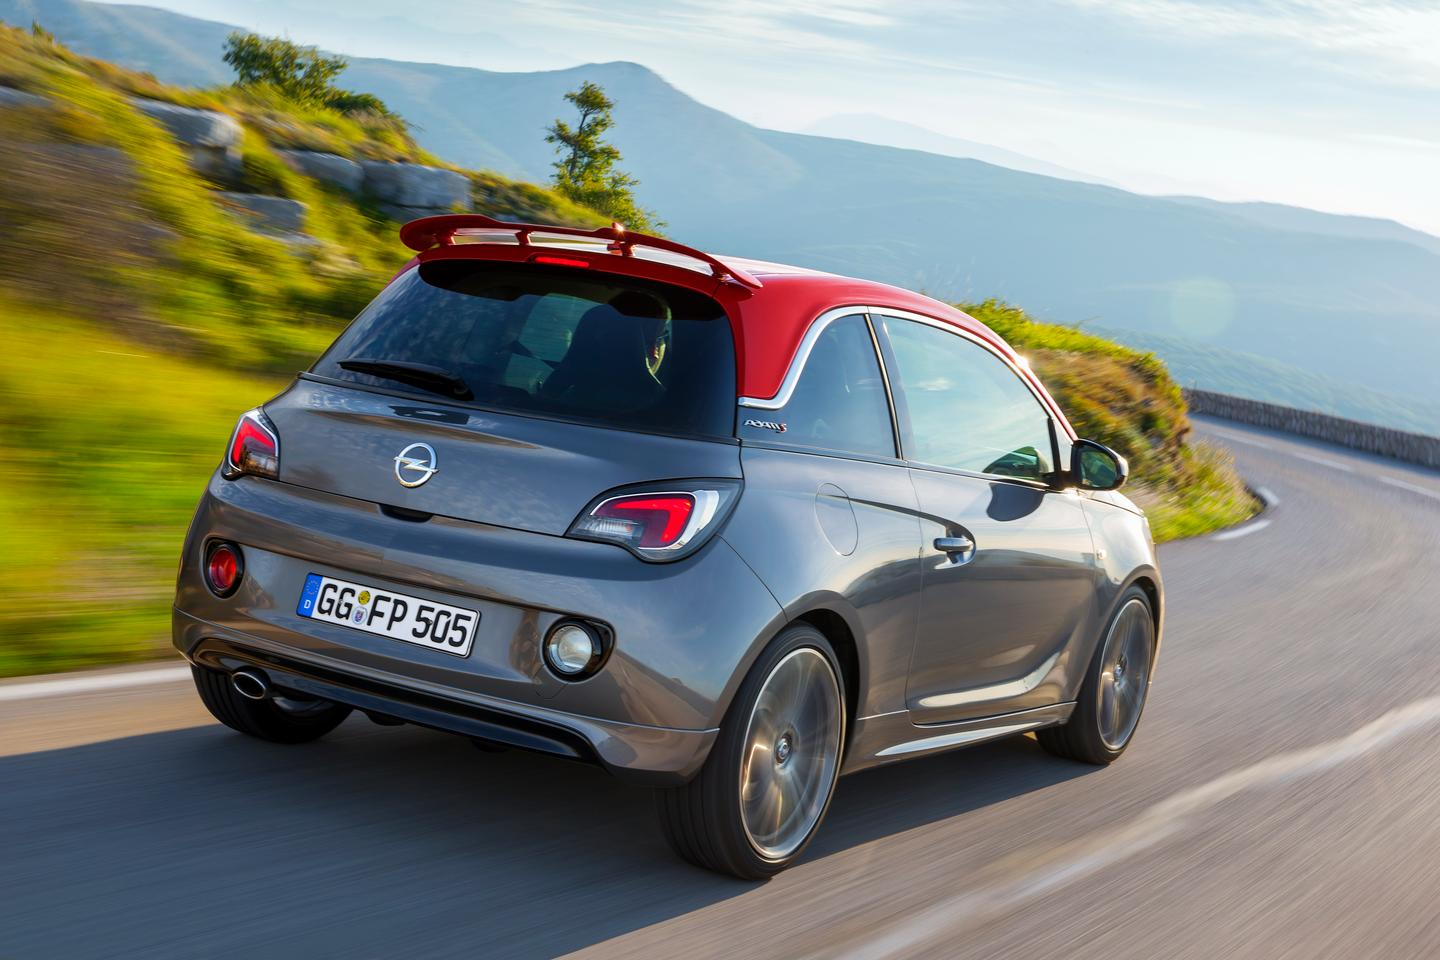 The Opel Adam S is powered by a 1.4-liter turbocharged engine